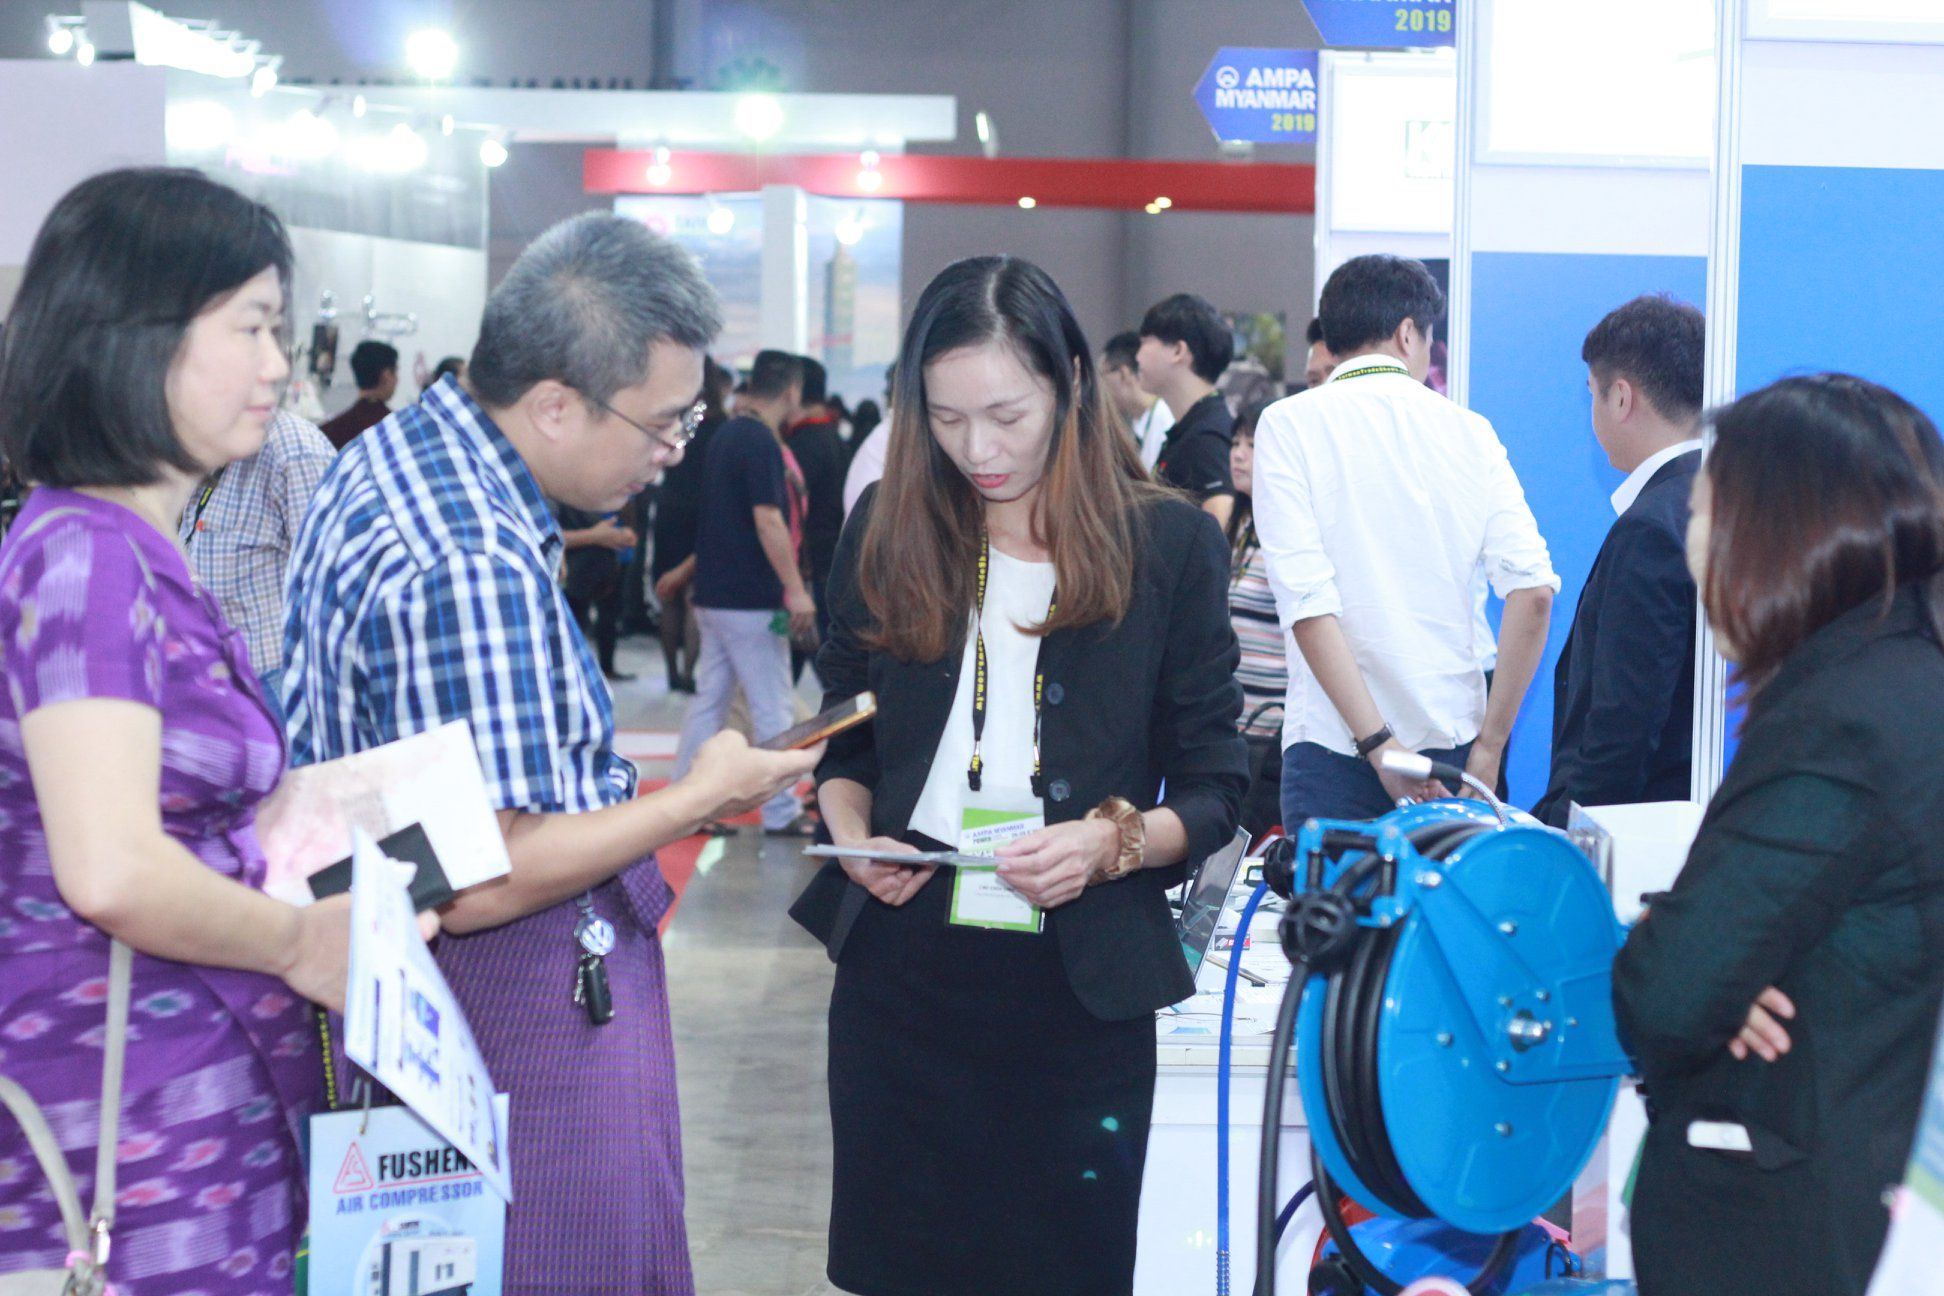 https://storage.googleapis.com/www.taiwantradeshow.com.tw/model/photo/EA/2019/PH00037764-name.jpg